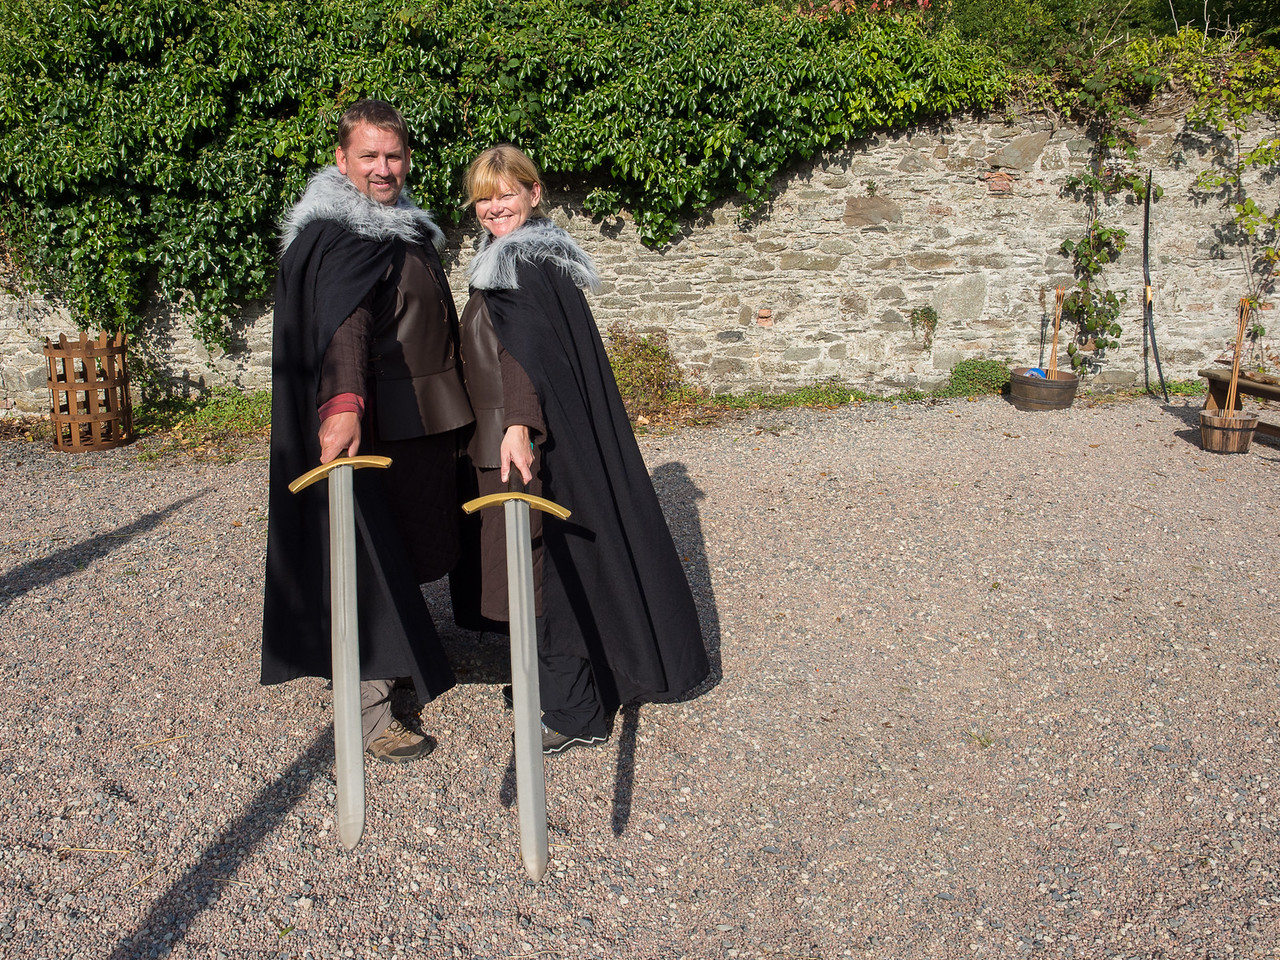 Dave and Deb in Game of Thrones robes